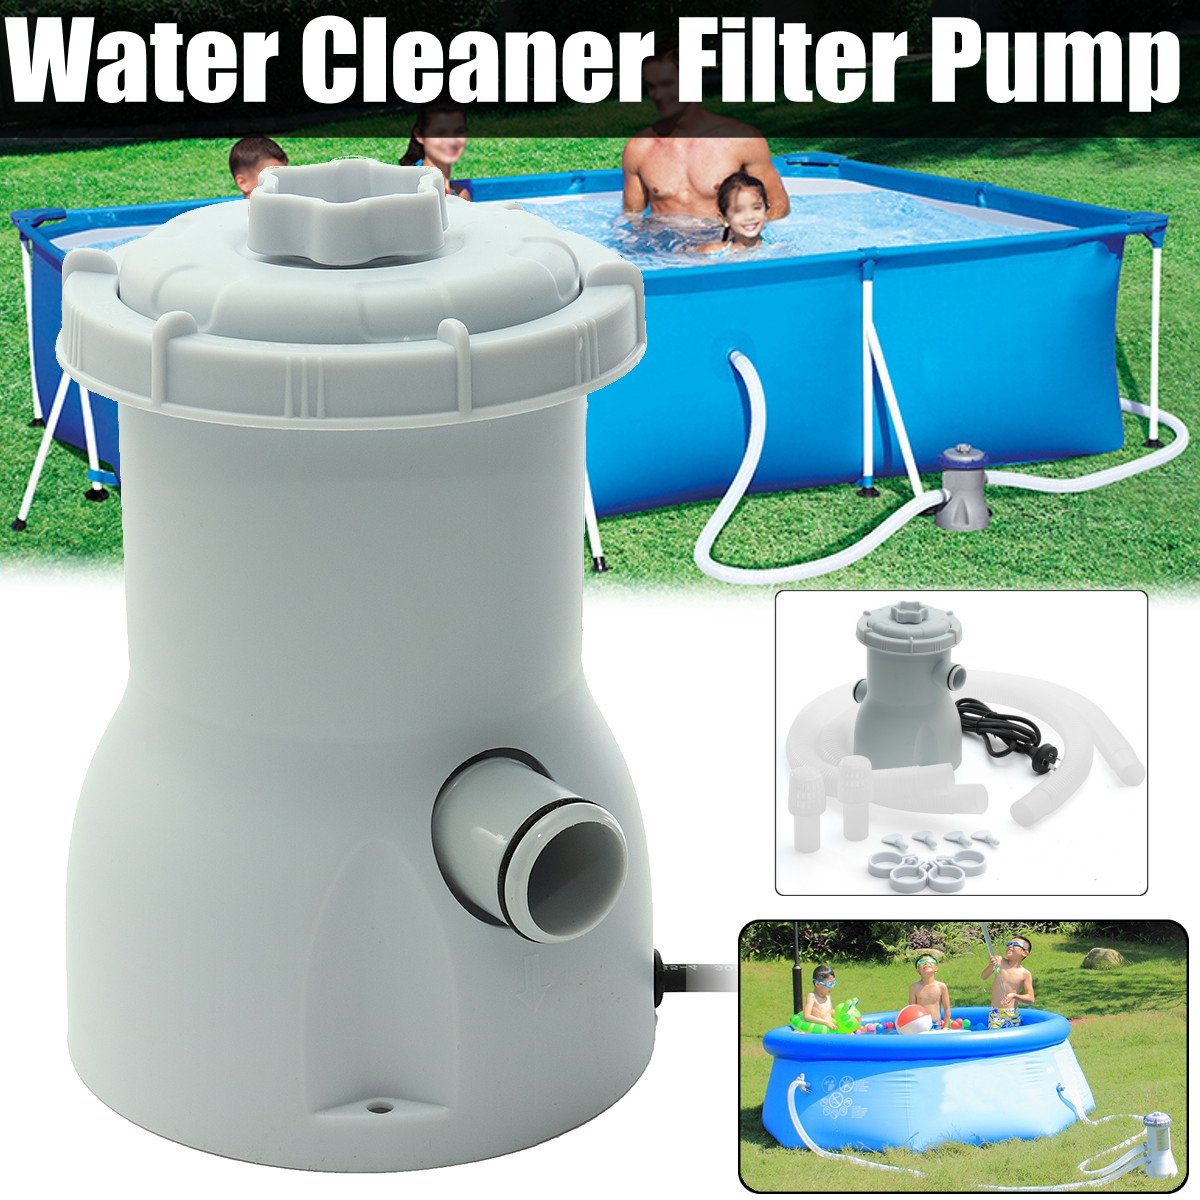 Bestway Frame Pool Untergrund 220v Electric Filter Pump Swimming Pool Filter Pump Water Clean Clear Dirty Pool Pond Pumps Filter Swimming Pool Water Cleaner